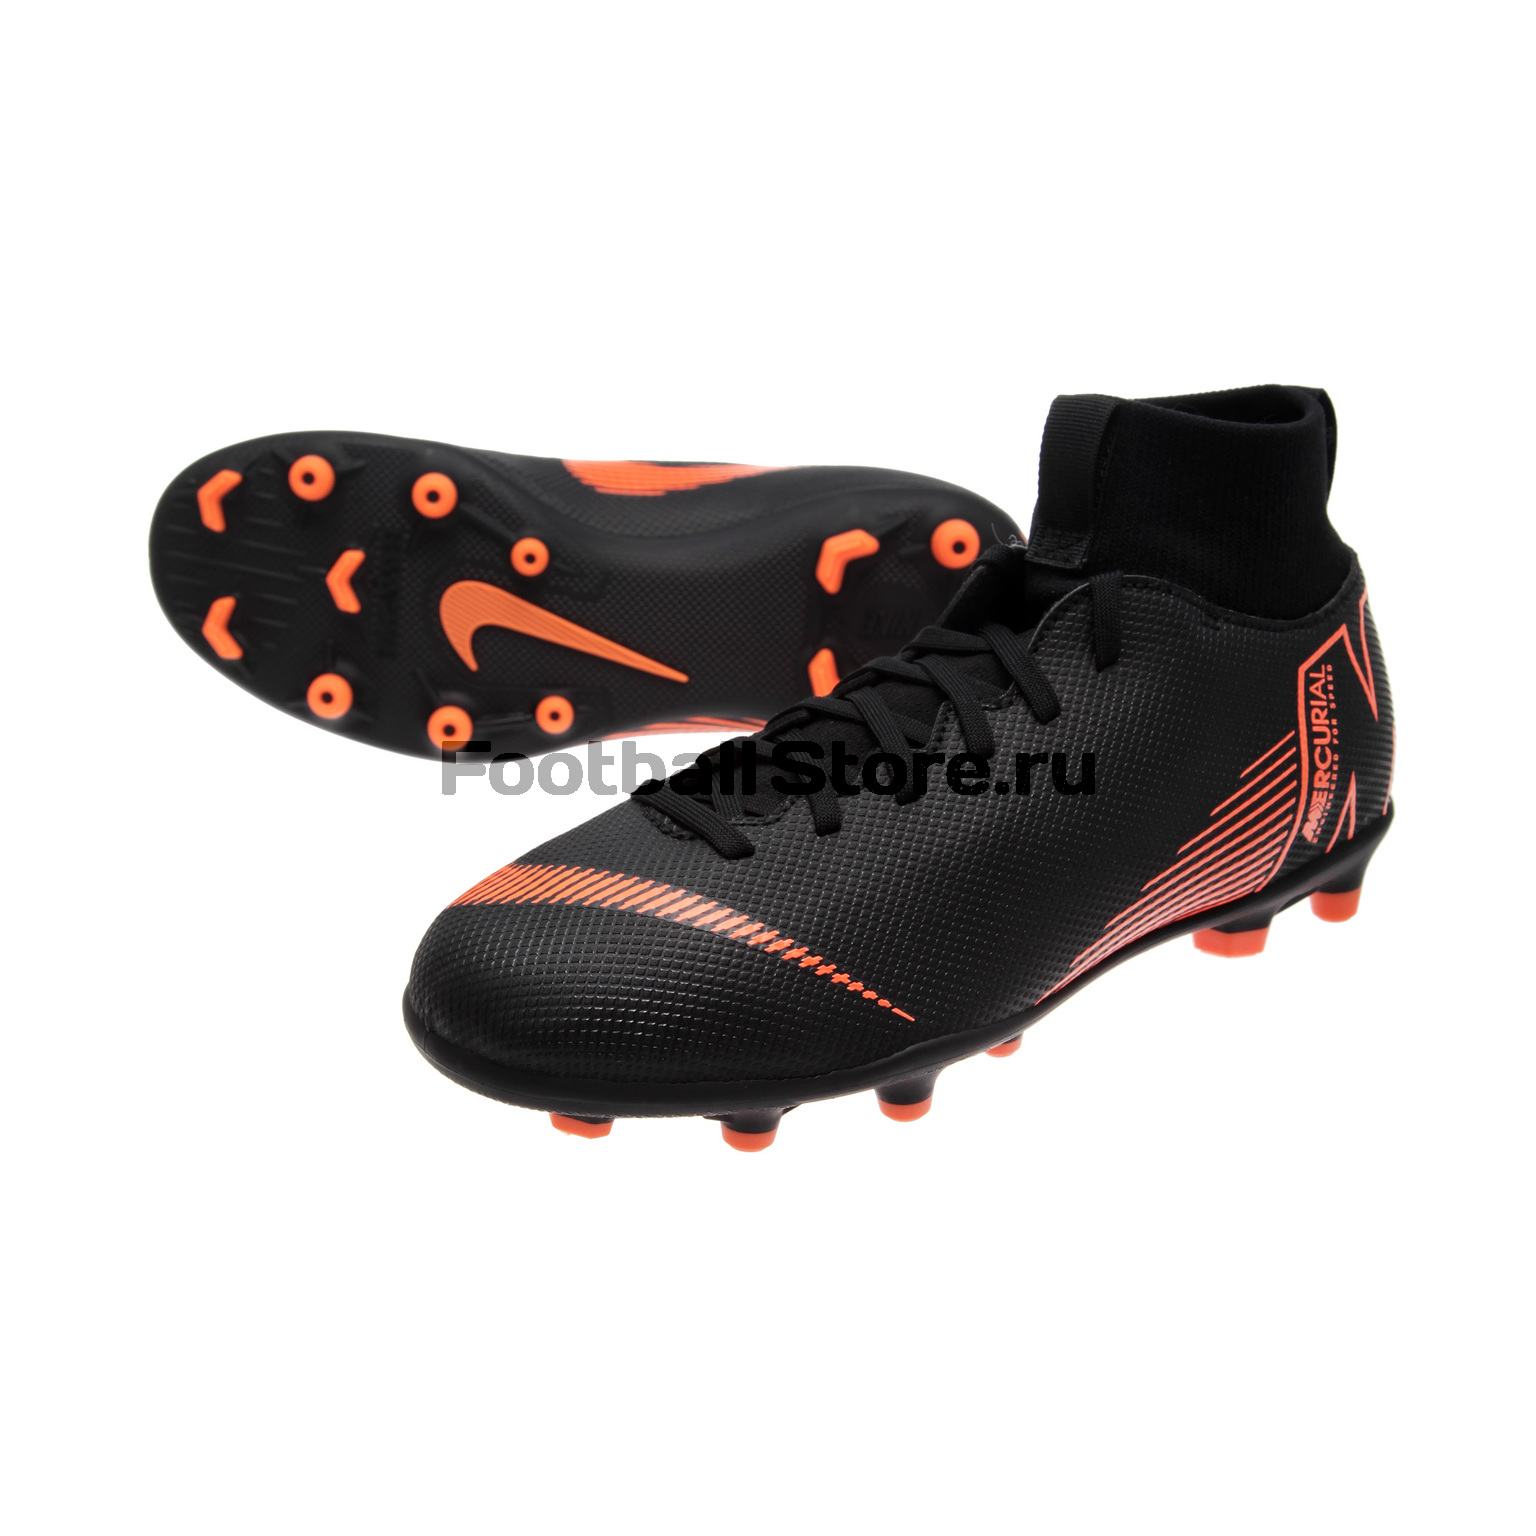 Бутсы Nike JR Superfly 6 Club FG/MG AH7339-081 бутсы nike hypervenom phantom iii club fg jrah7290 081